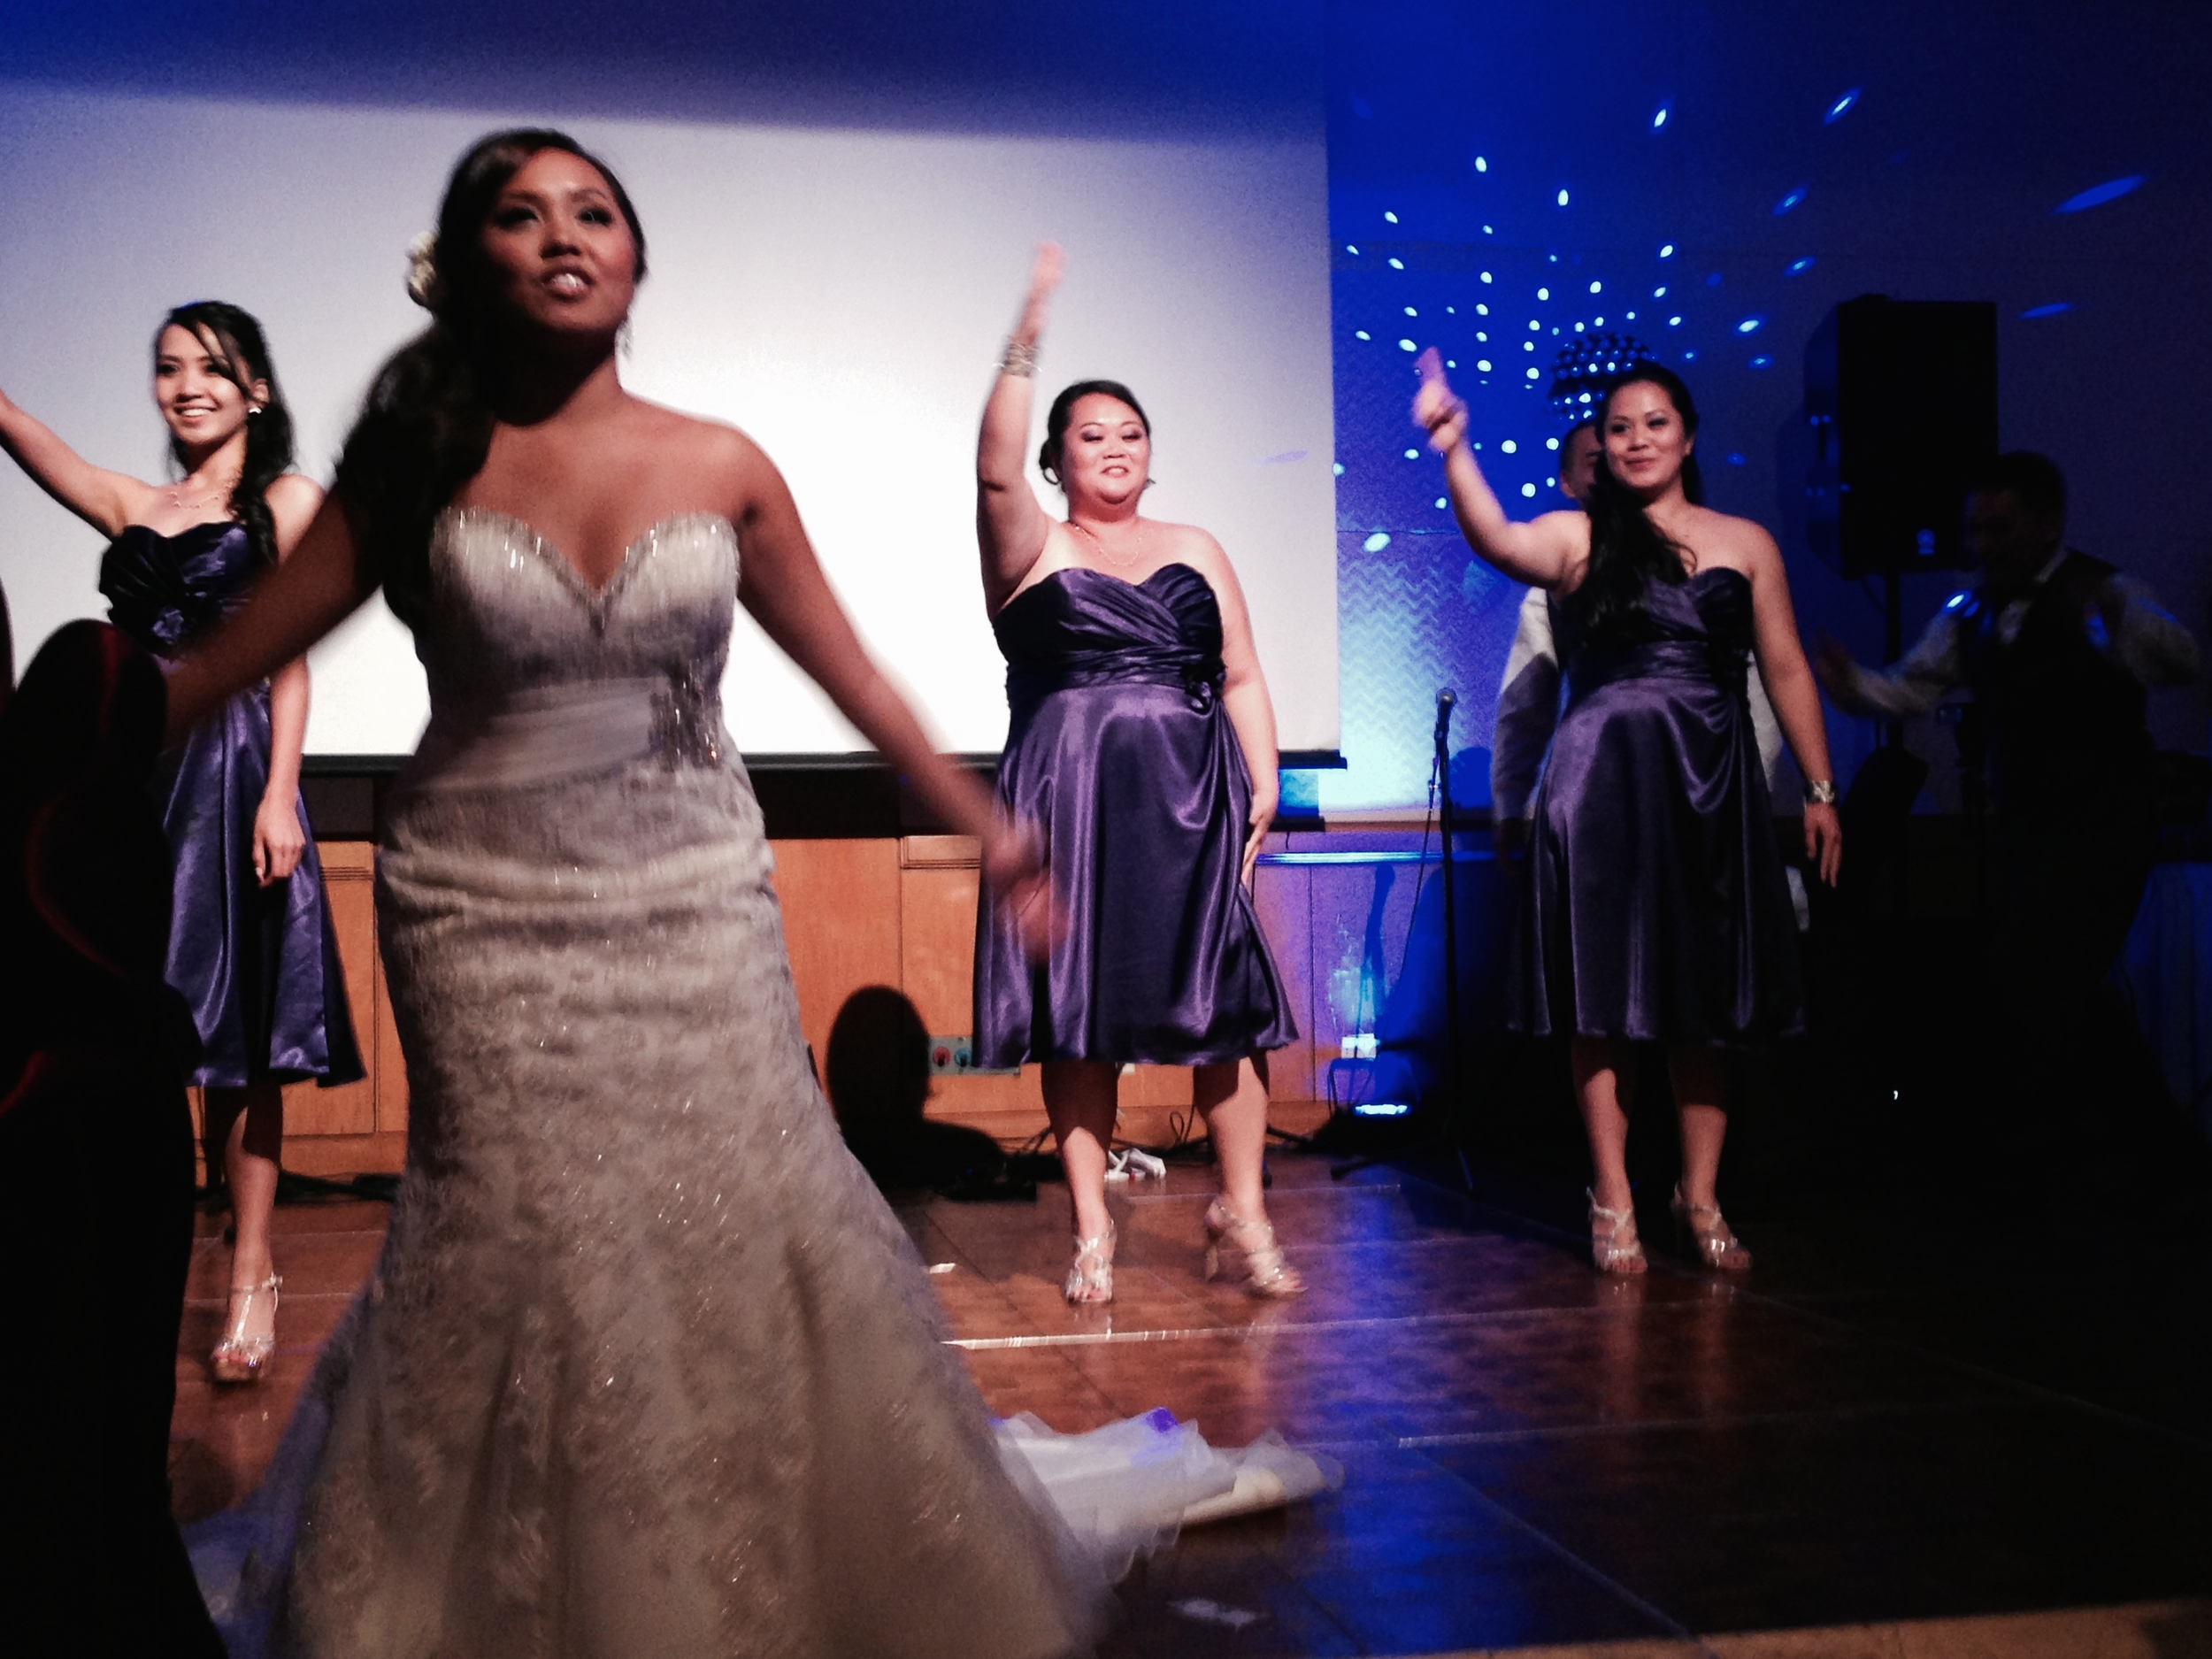 mike-ashley-hawaii-prince-hotel-reception-wedding-dance-fun-bridesmaids